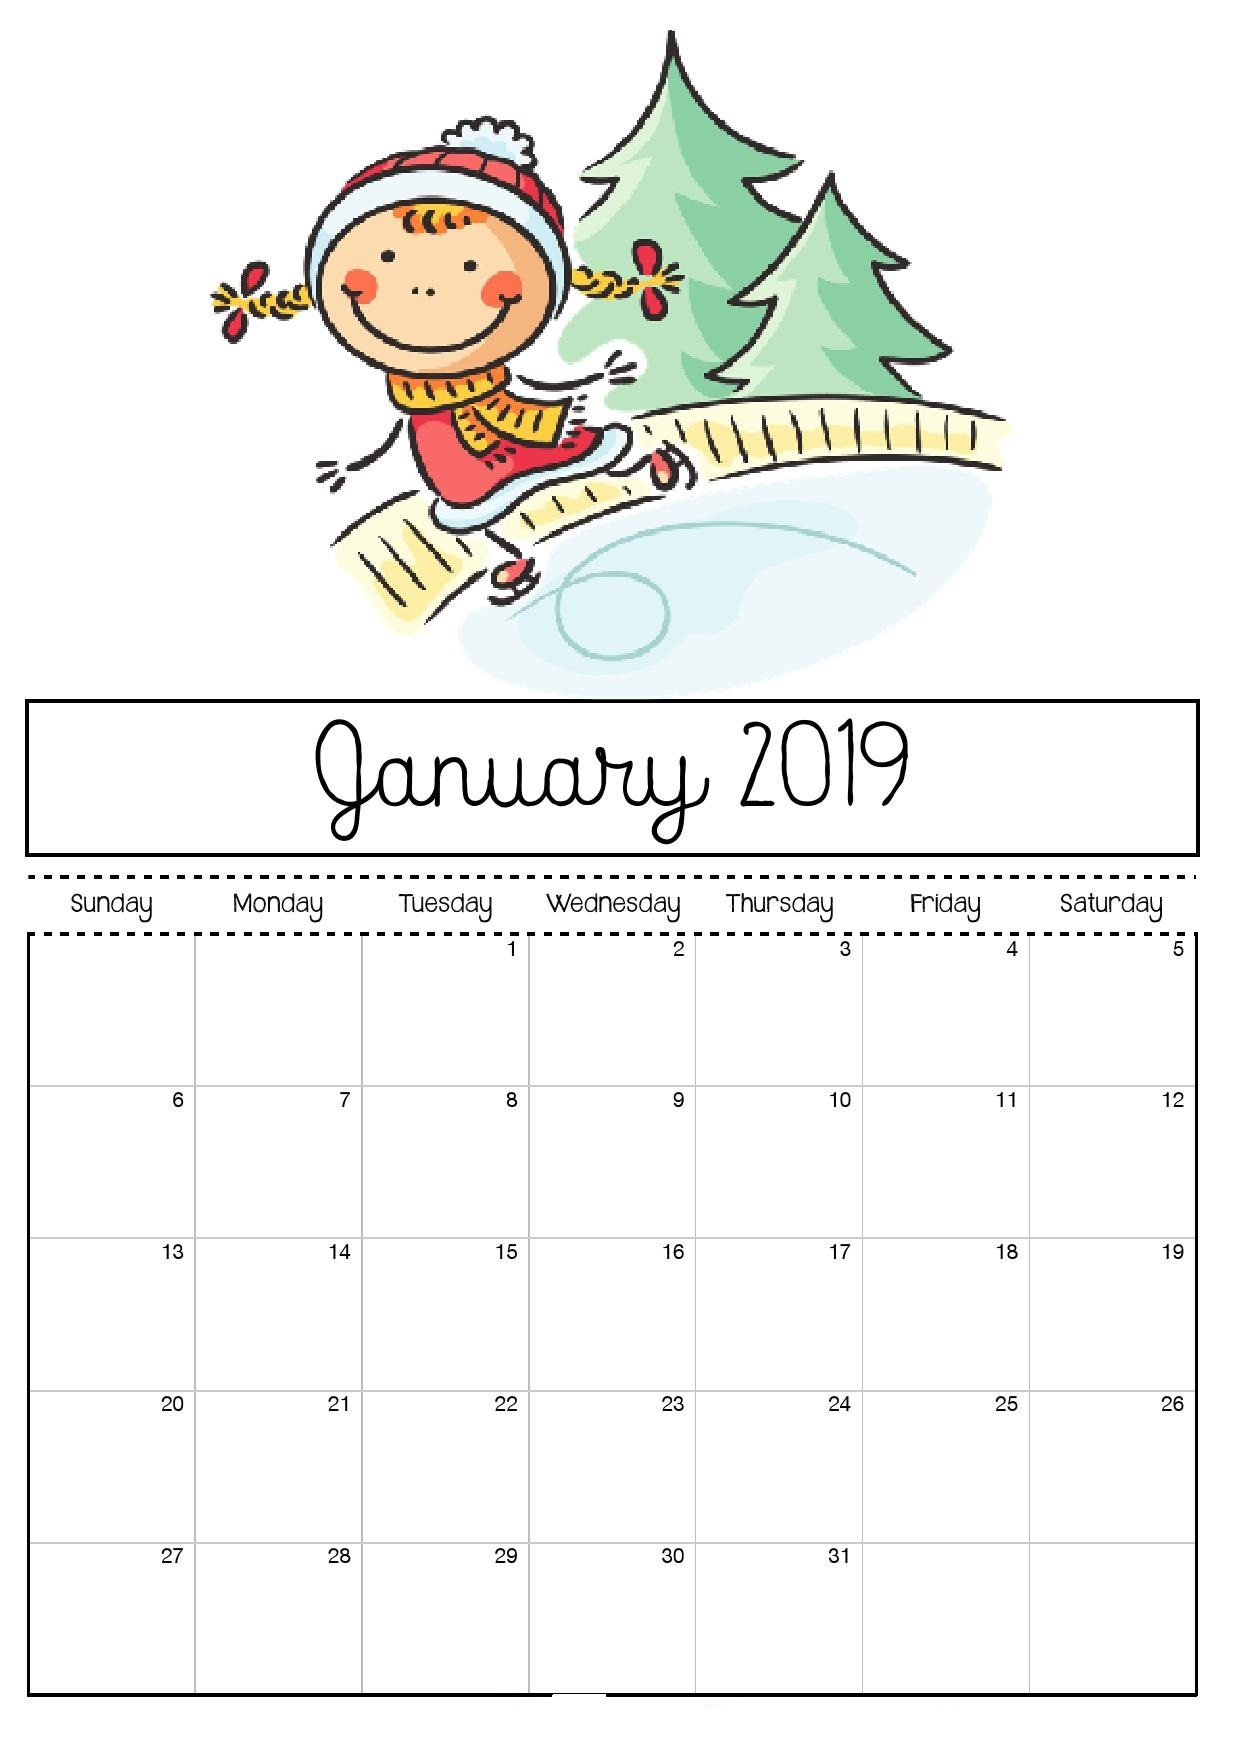 january month 2019 holiday calendar 2019 calendar templates printable::January 2019 Calendar with Holidays Printable